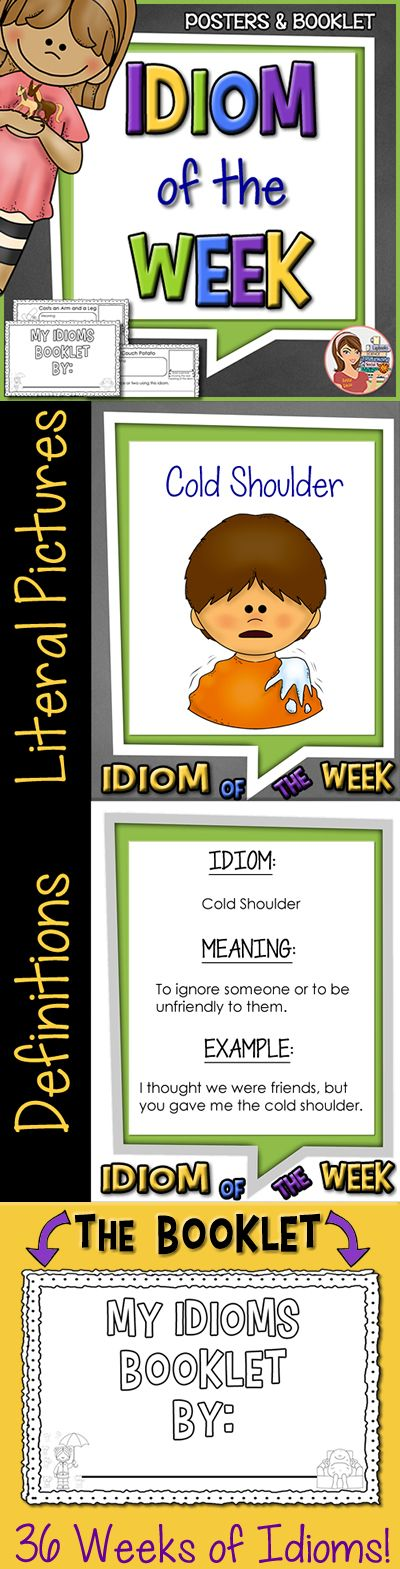 Idiom of the week posters and student booklet (36 weeks!).